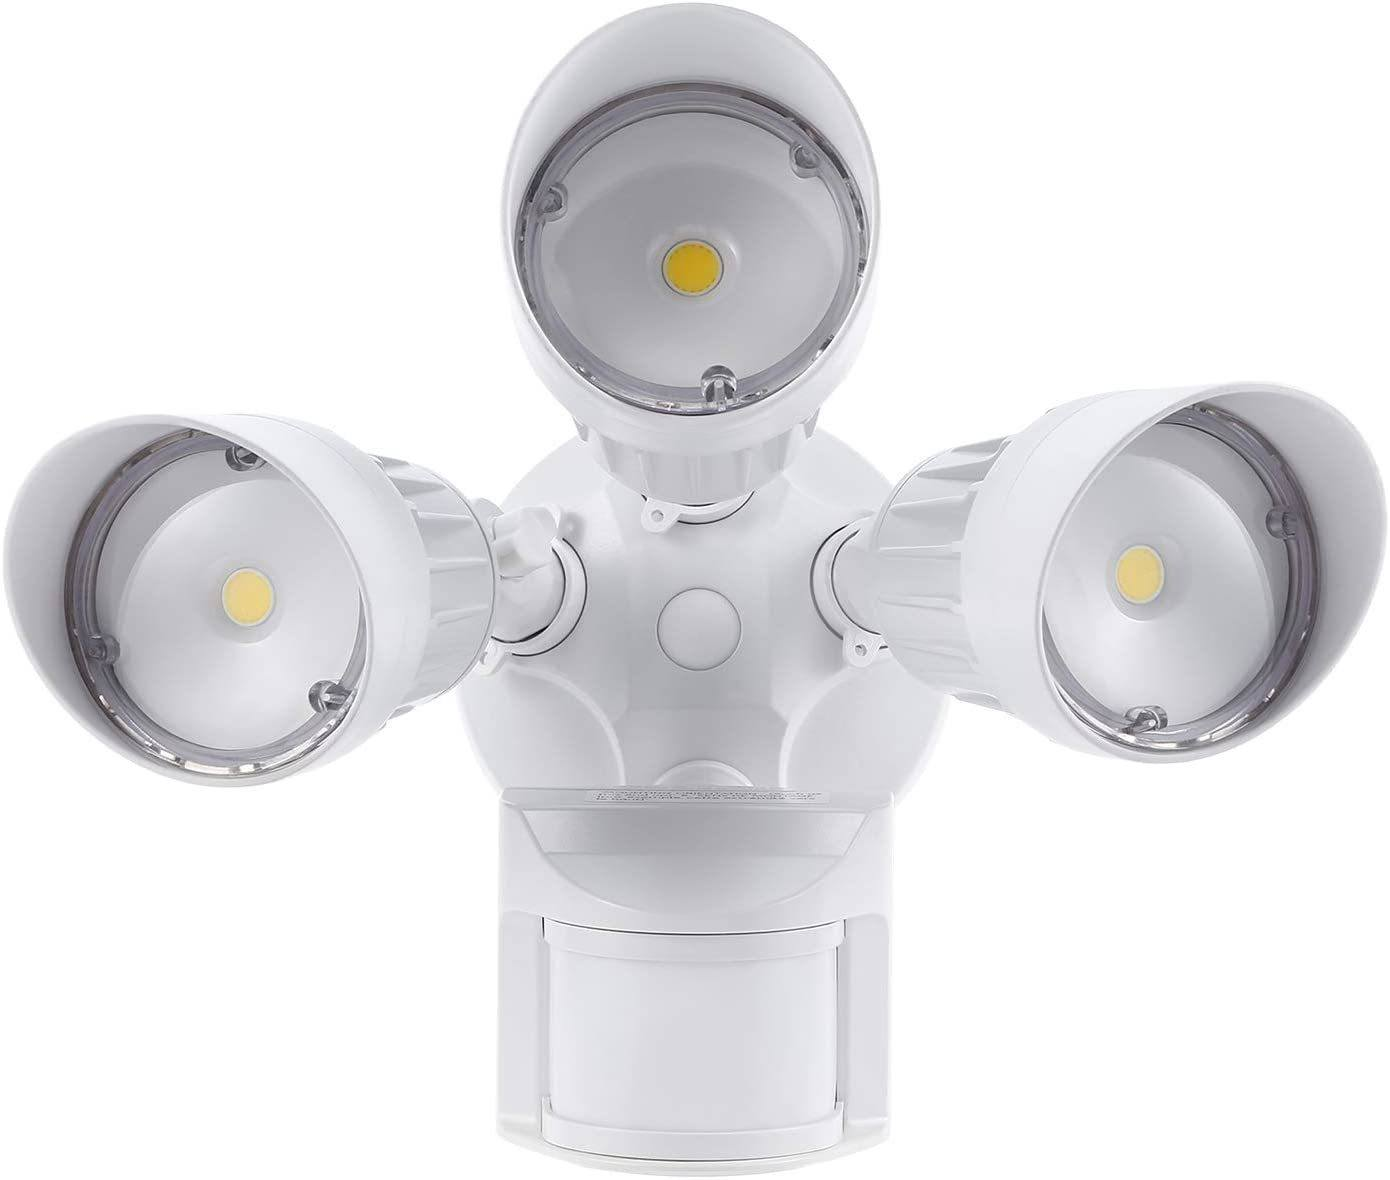 Image for LeonLite 30W 3-Head Motion Activated LED Outdoor Security Light